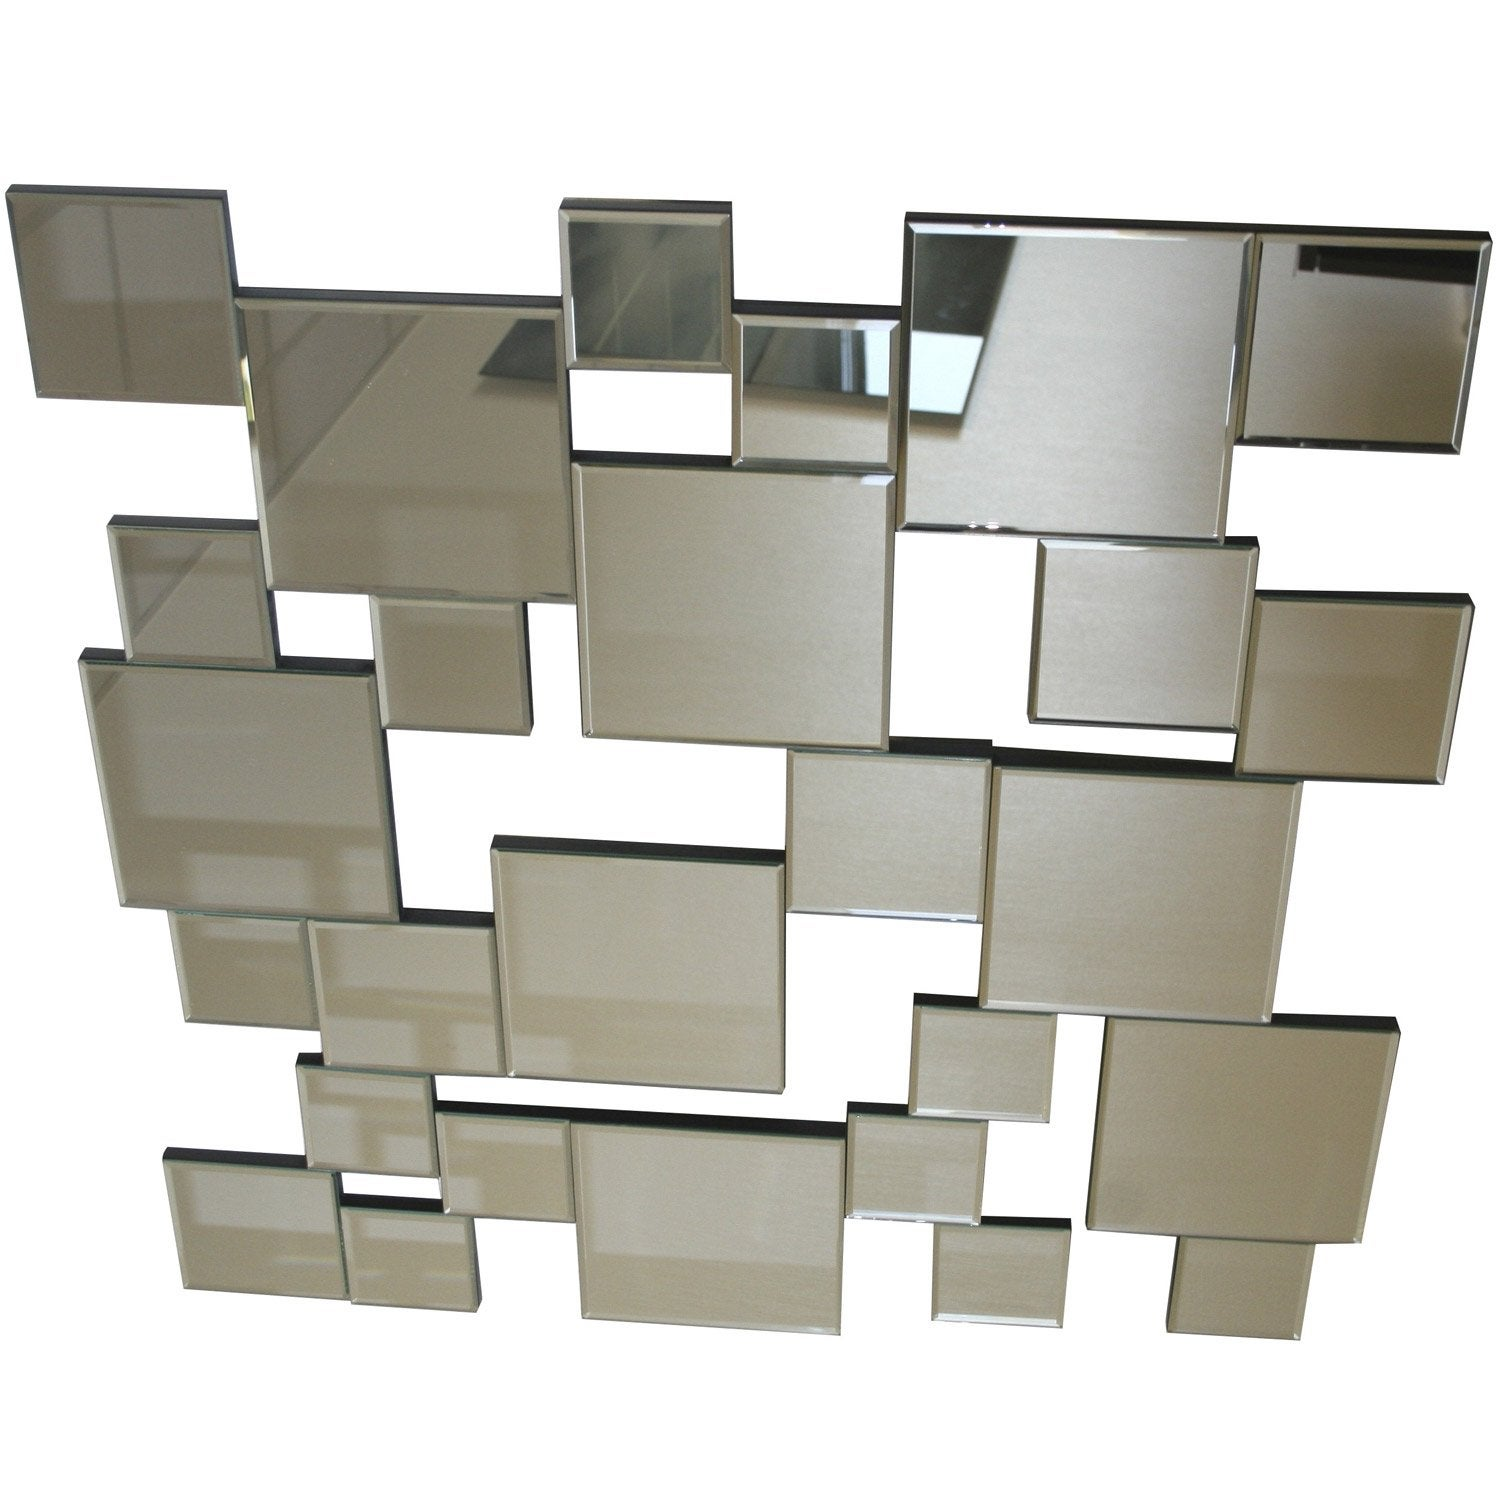 Miroir facettes monera 80x80 cm leroy merlin for Grand miroir leroy merlin